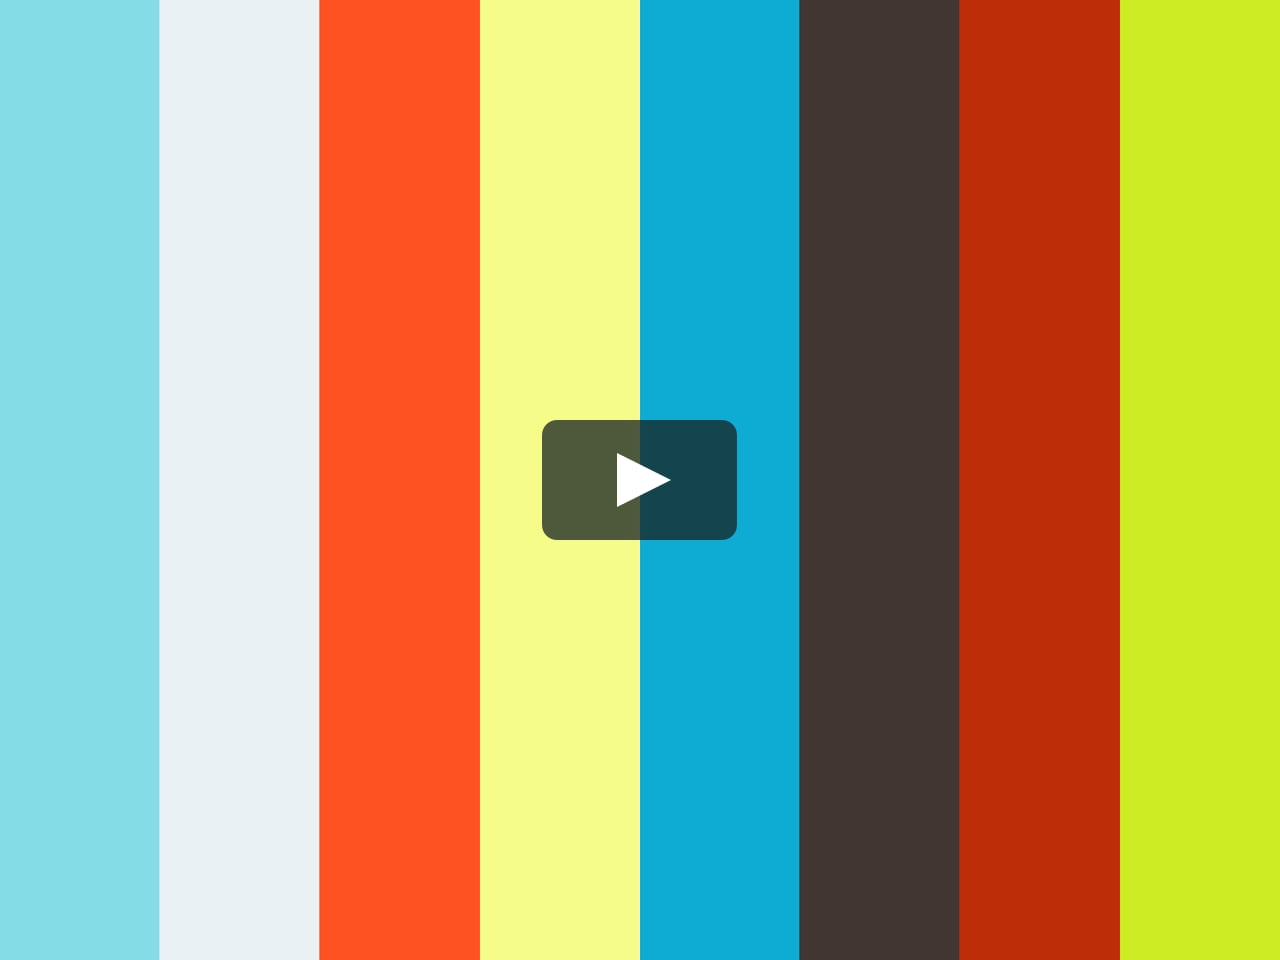 jeep liberty repair manual 2007 2008 2009 2010 on vimeo. Black Bedroom Furniture Sets. Home Design Ideas